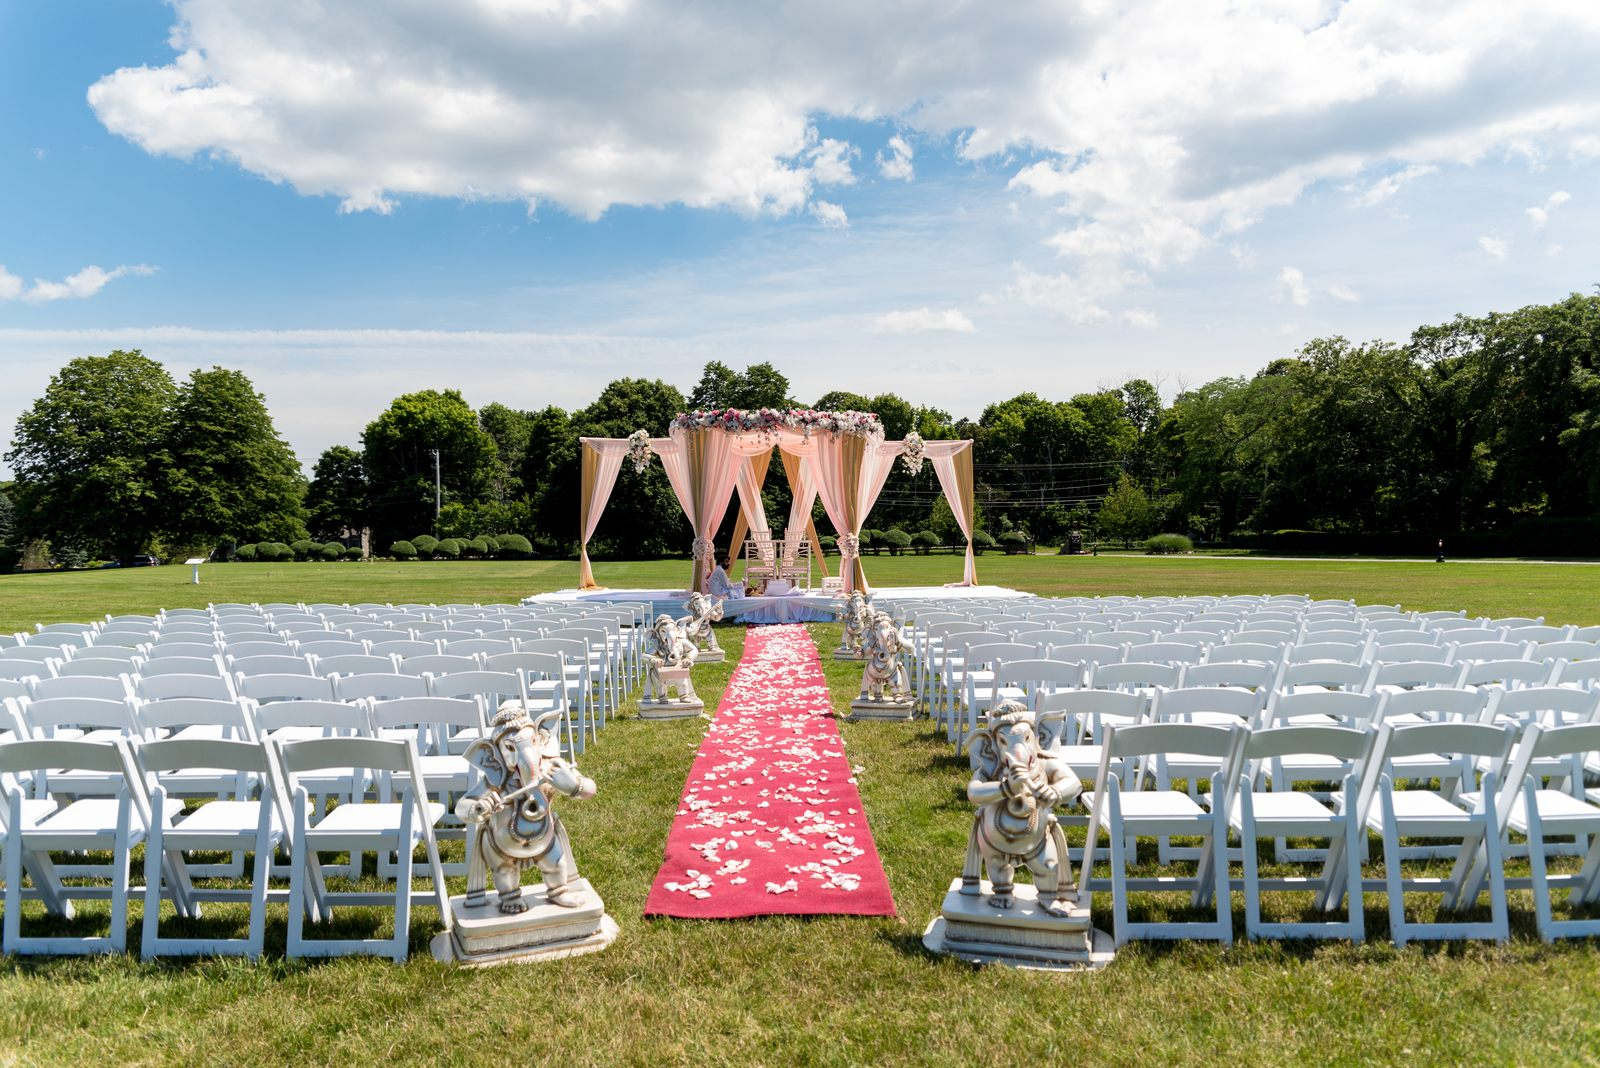 Wedding aisle and seating on front lawn, with petals on aisle carpet